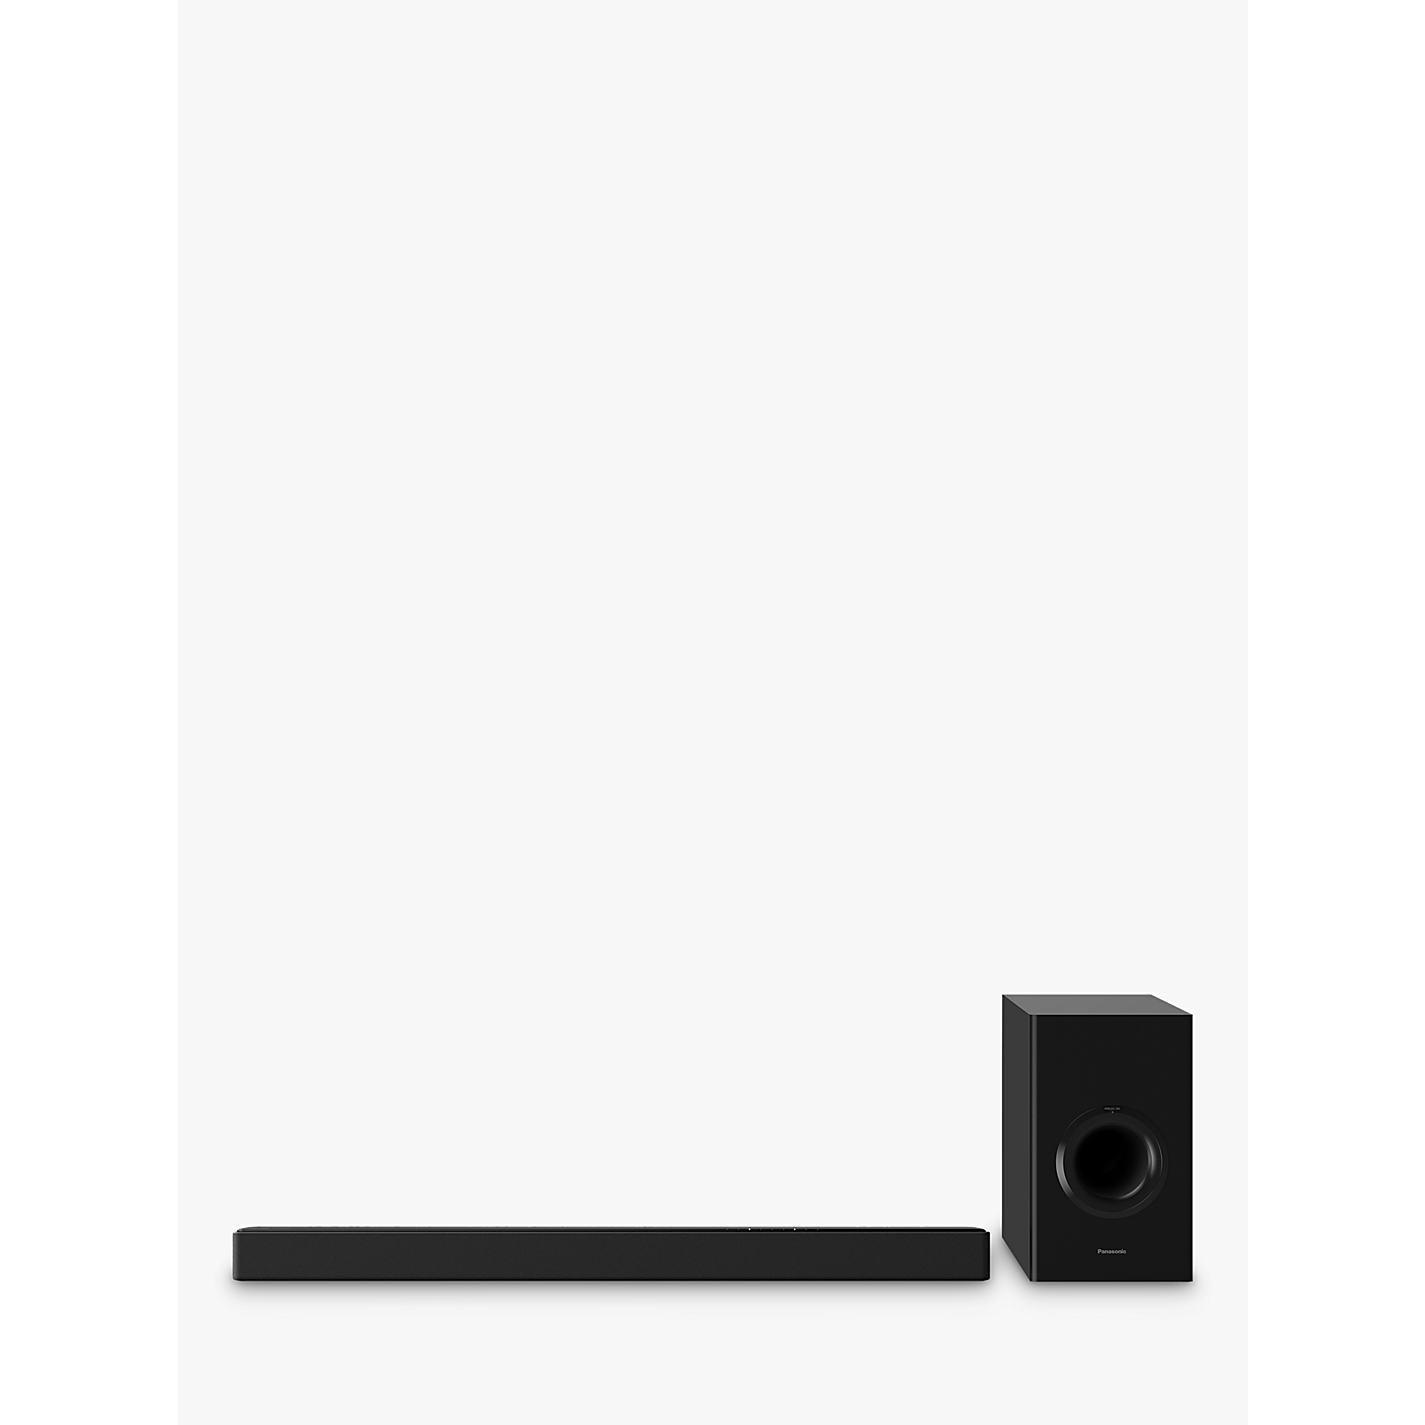 Panasonic Sc Htb488 Bluetooth Sound Bar With Wireless Subwoofer Online At Johnlewis